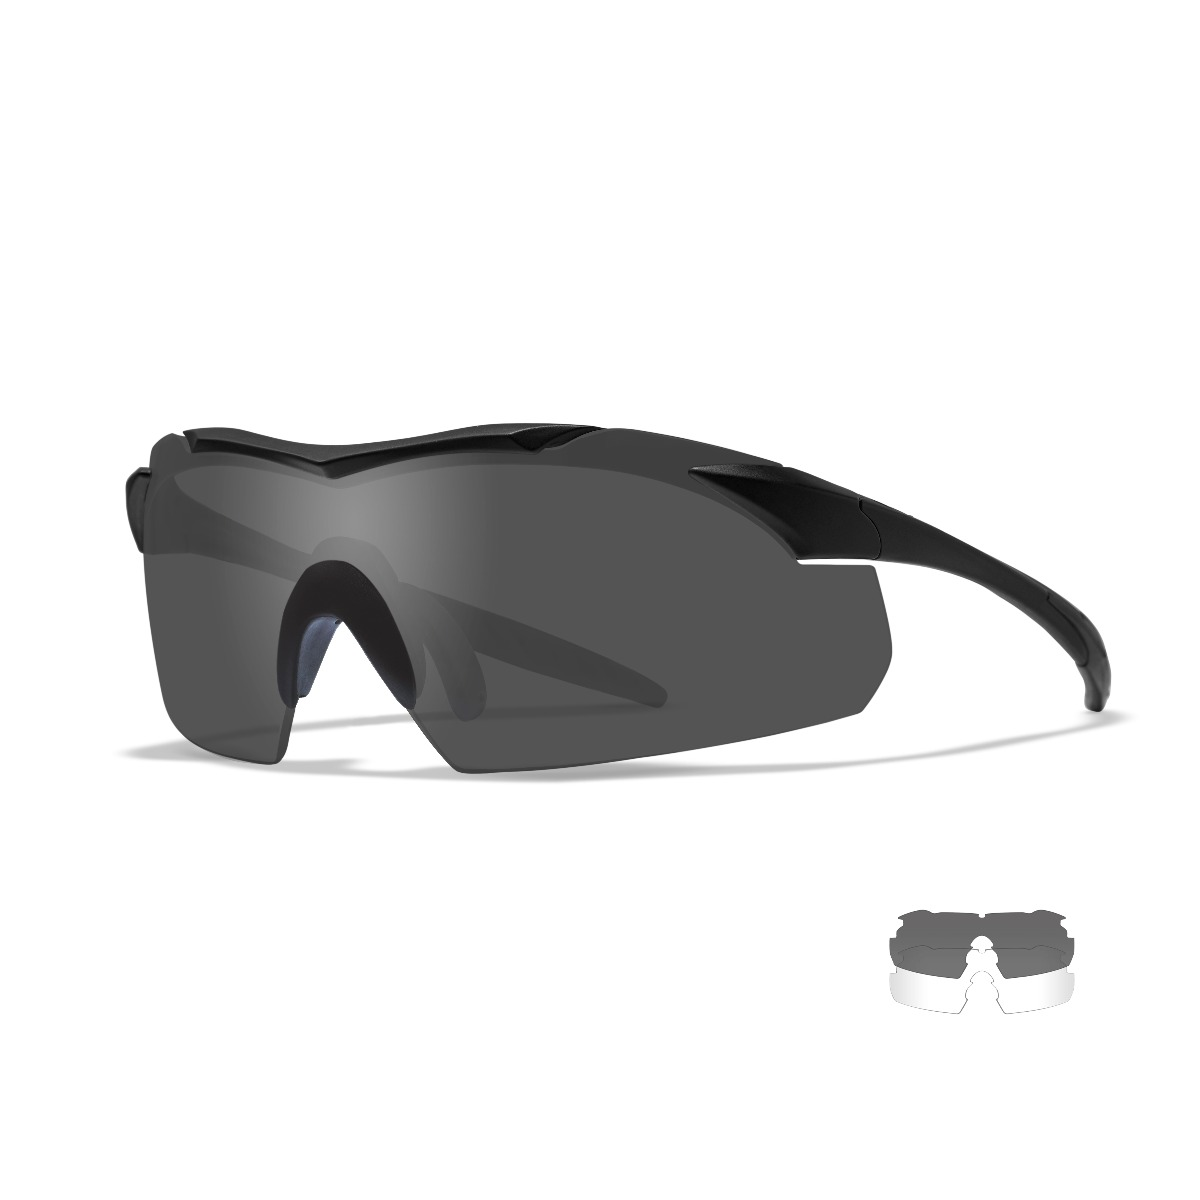 WILEY X Vapor Sun/Safety Glasses Black Frame with Smoke/Clear Lenses